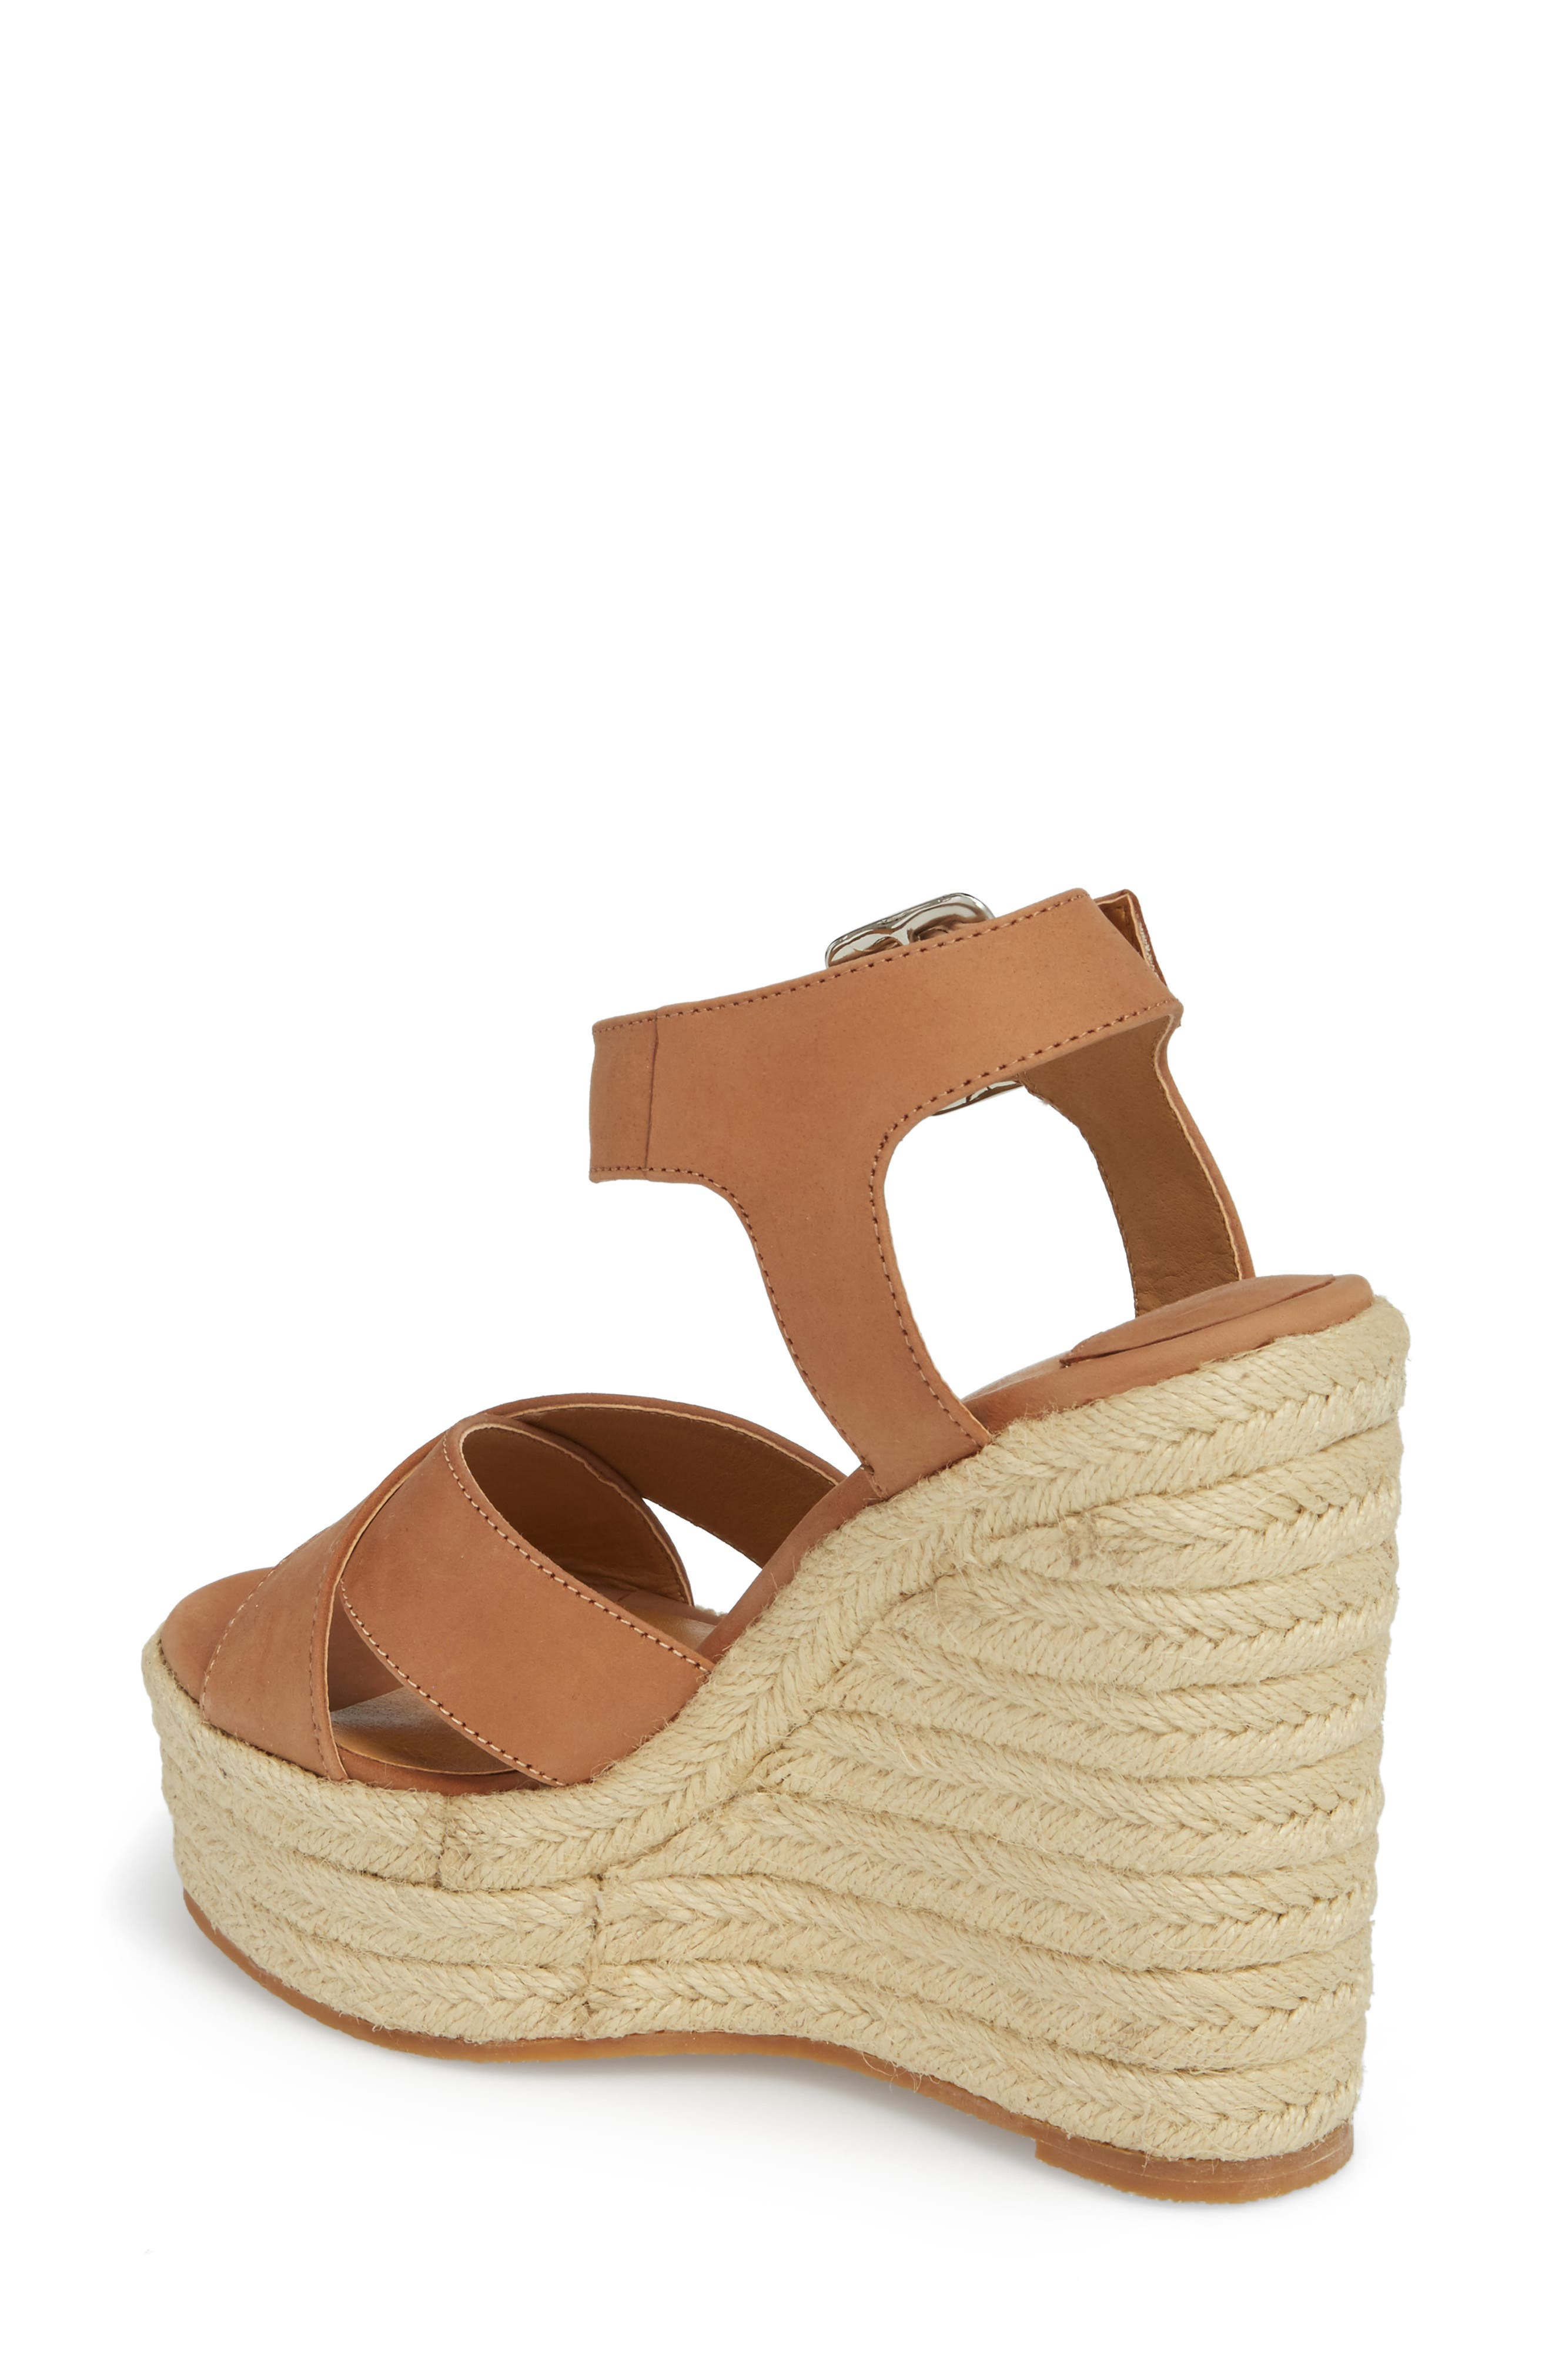 Boston Espadrille Wedge Sandal,                             Alternate thumbnail 2, color,                             CARAMEL PHOENIX LEATHER